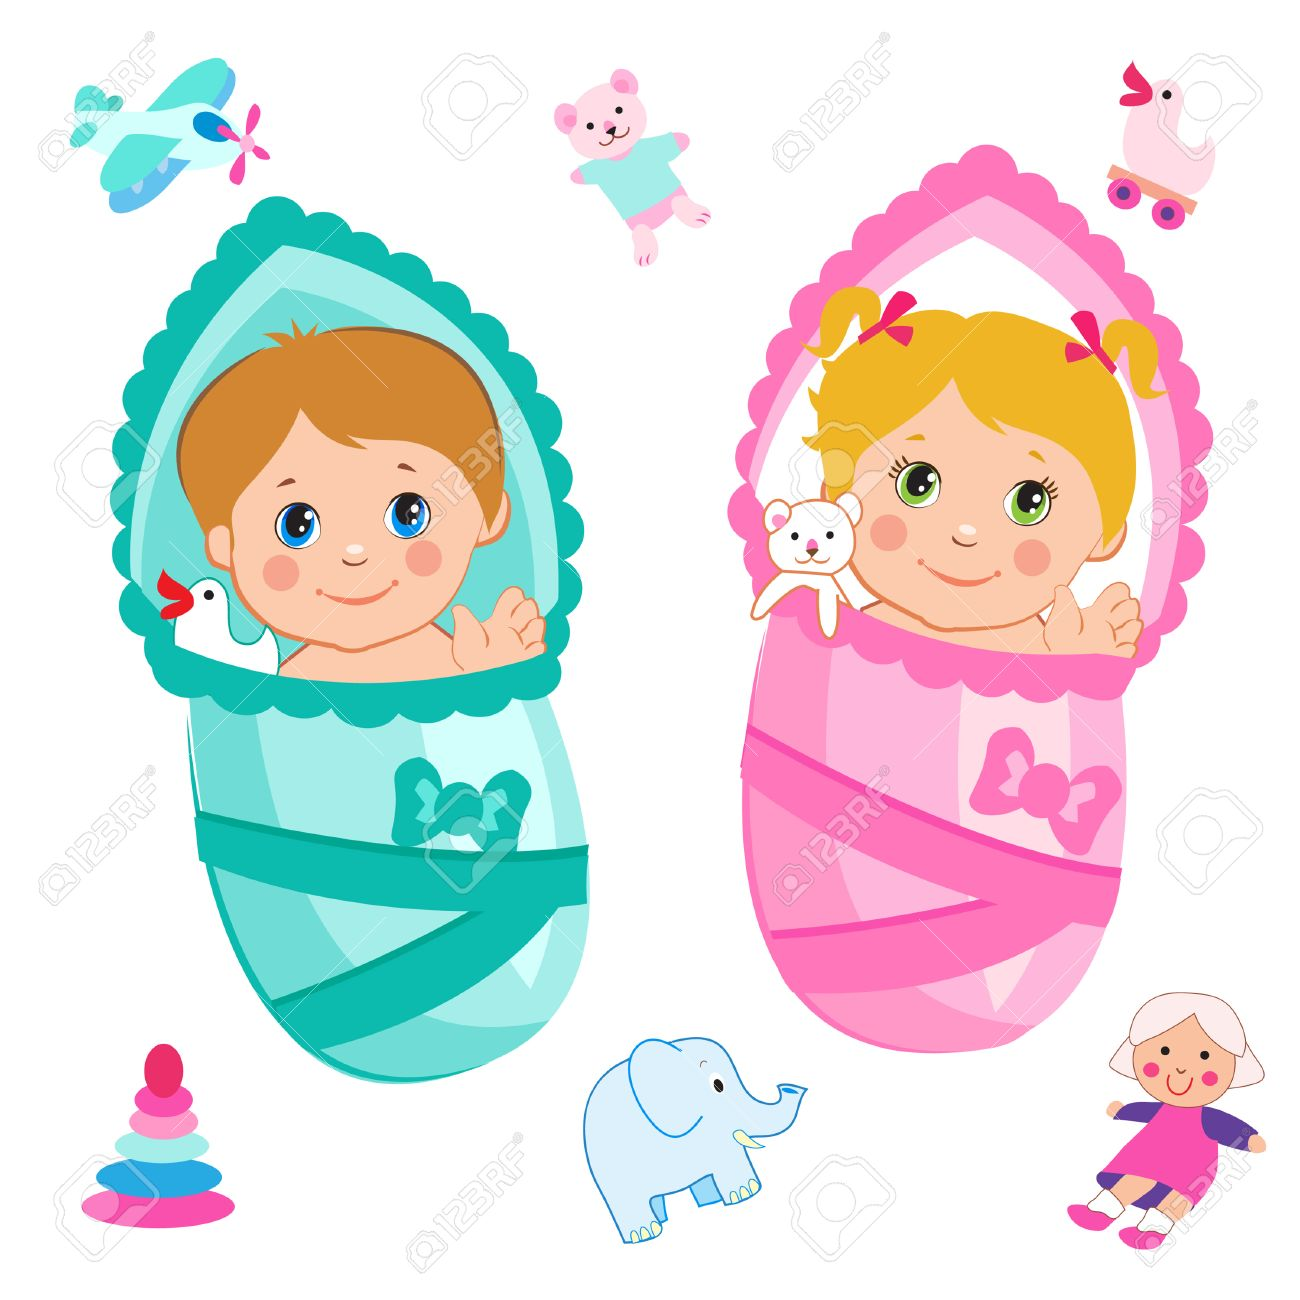 Baby Girl And Baby Boy Cartoon Vector On A White Background